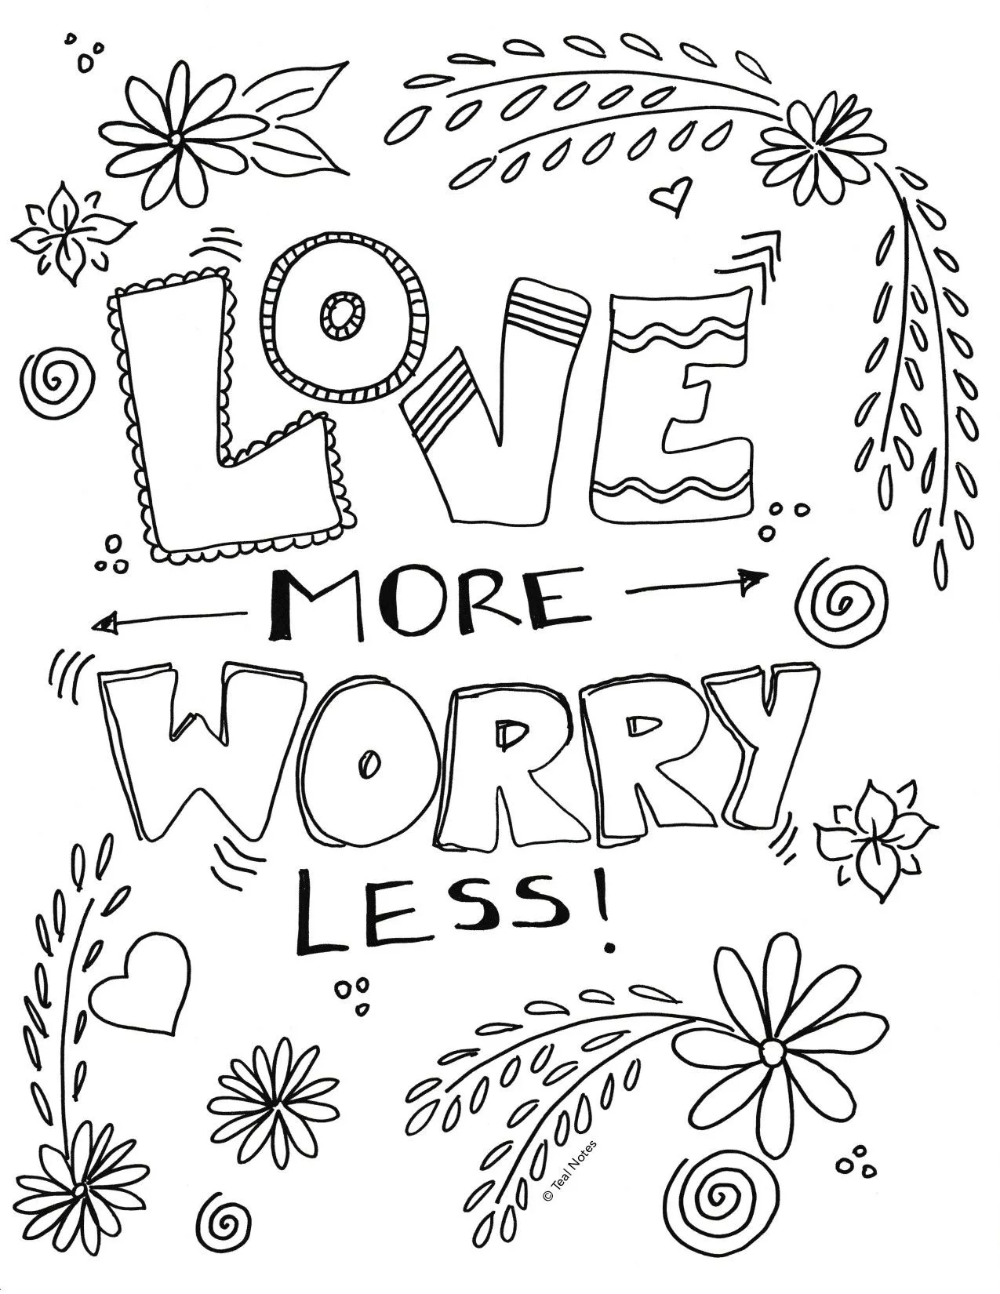 5 Quote Coloring Pages You Can Print And Color On Your Free Time Quote Coloring Pages Coloring Pages For Teenagers Coloring Pages